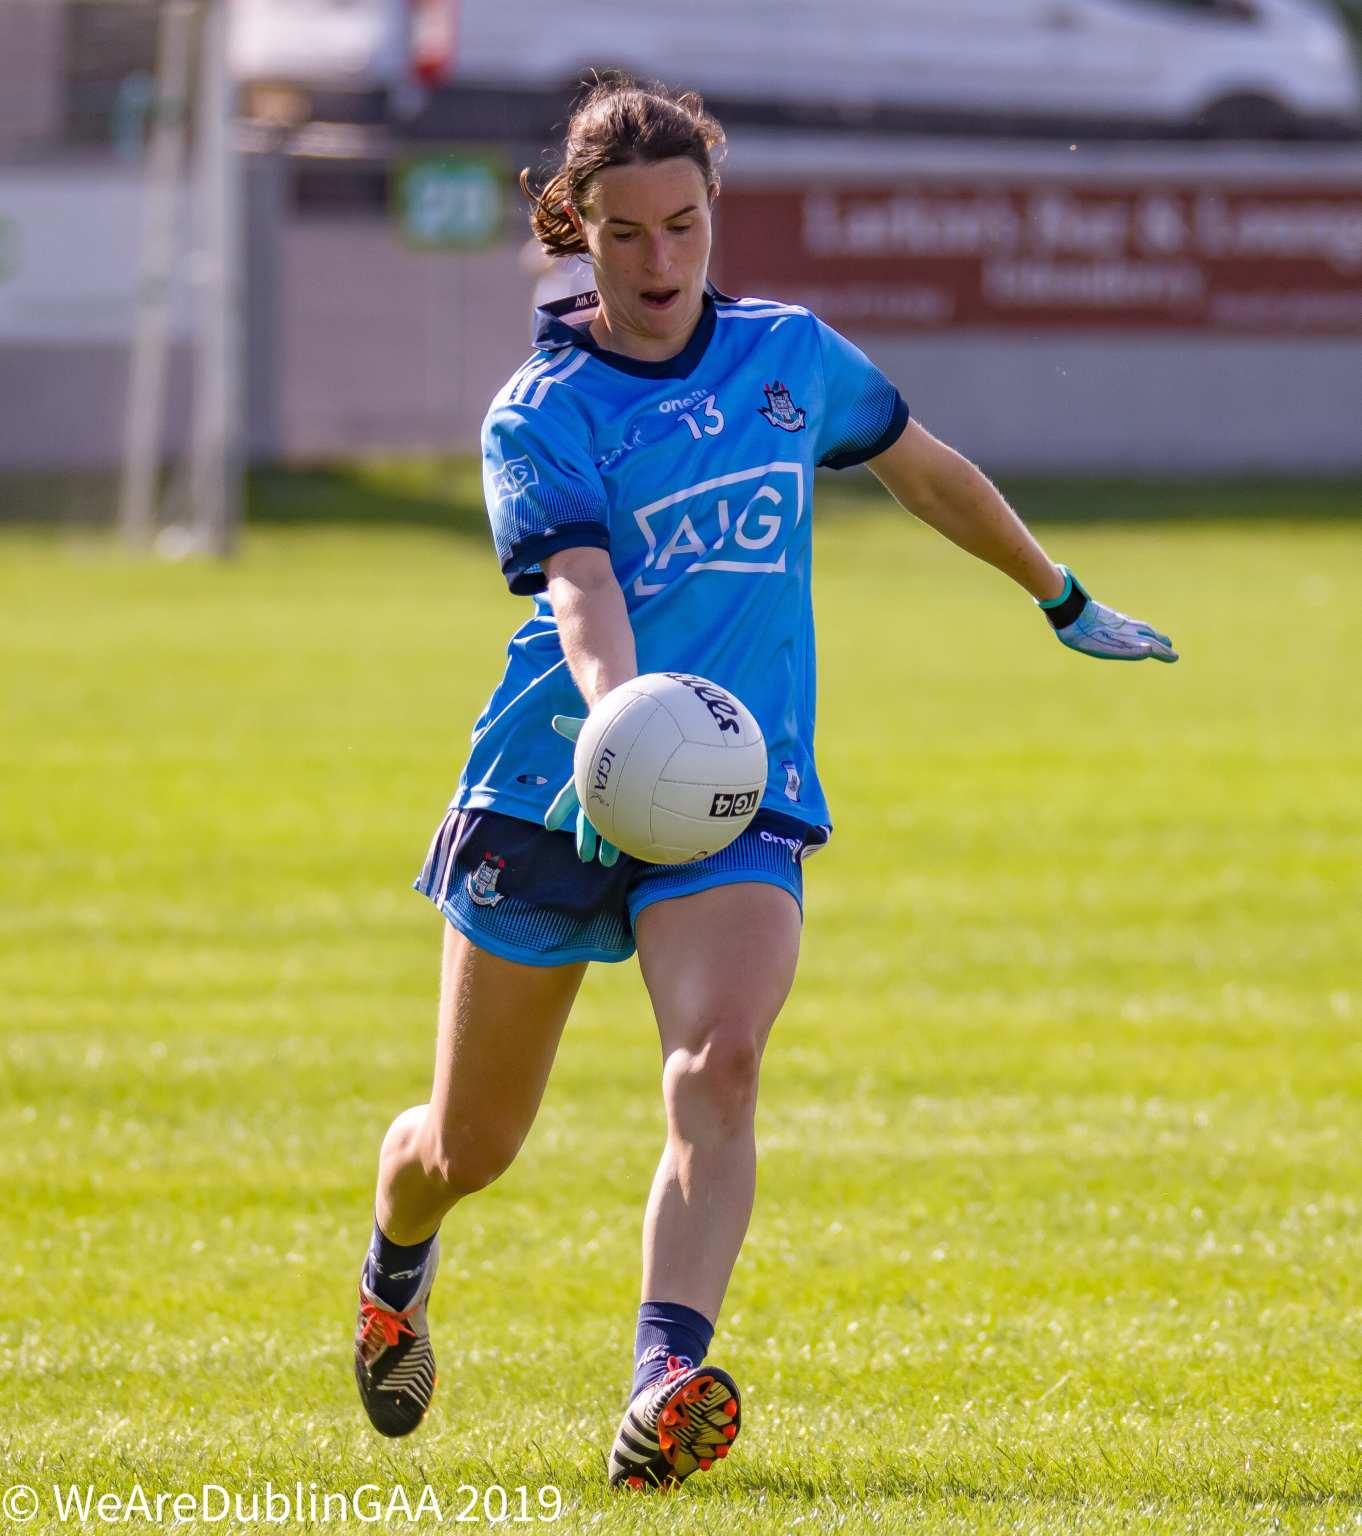 Dublin Senior Ladies Football Team Captain Sinead Aherne has jumped to the top of the Dublin top scorer leaderboard for the Championship